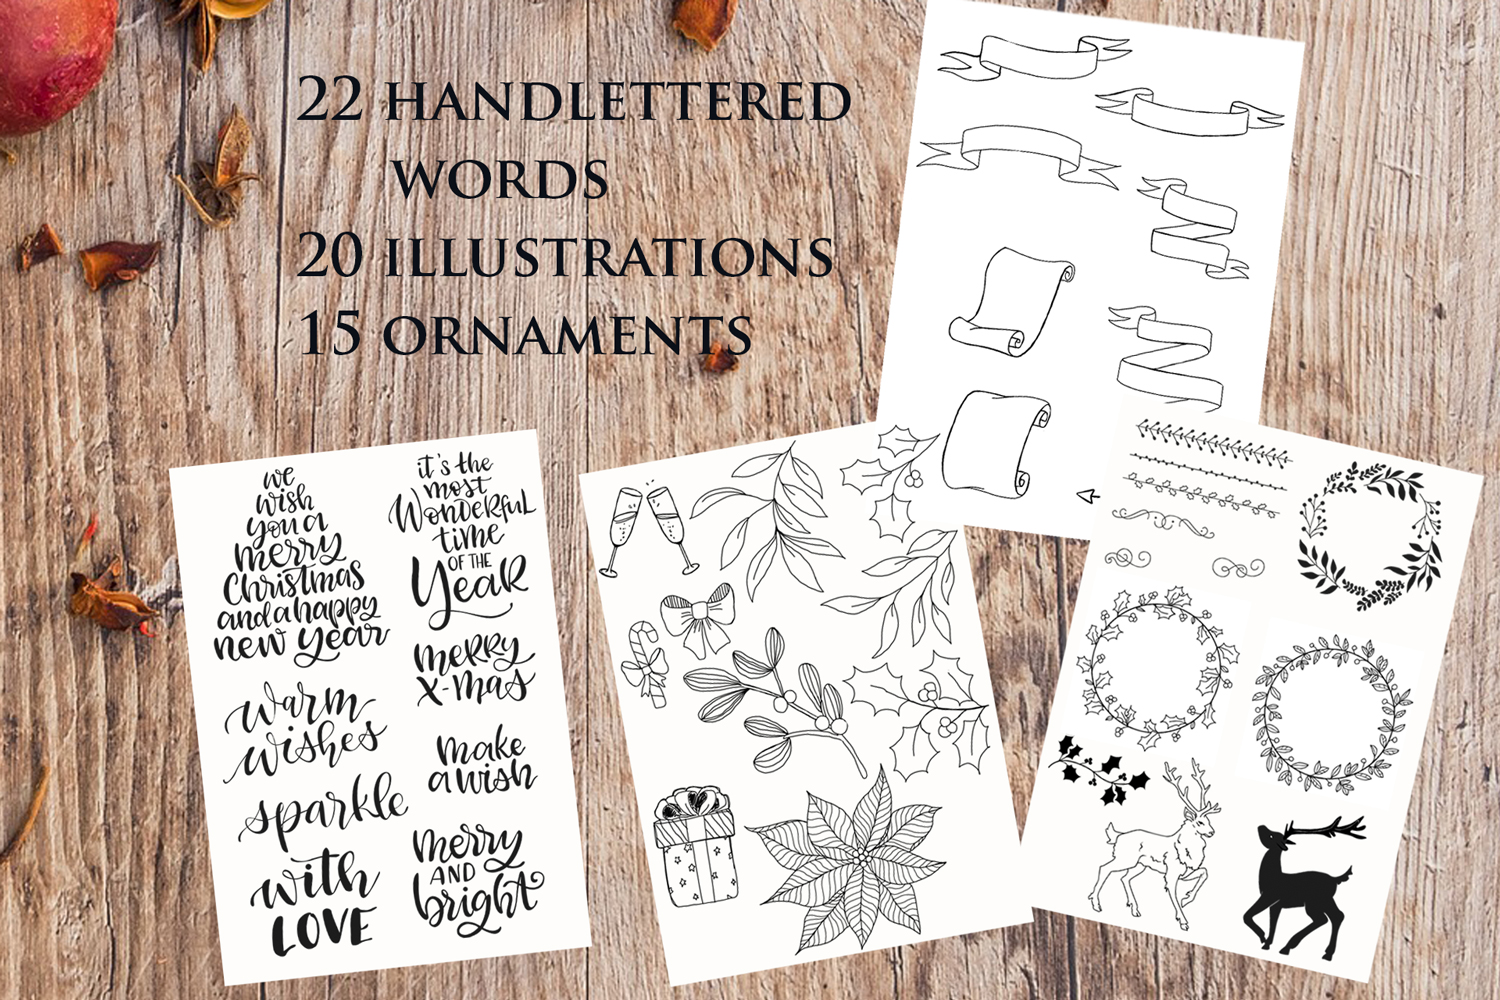 Christmas Collection - words, illustrations, ornaments example image 2